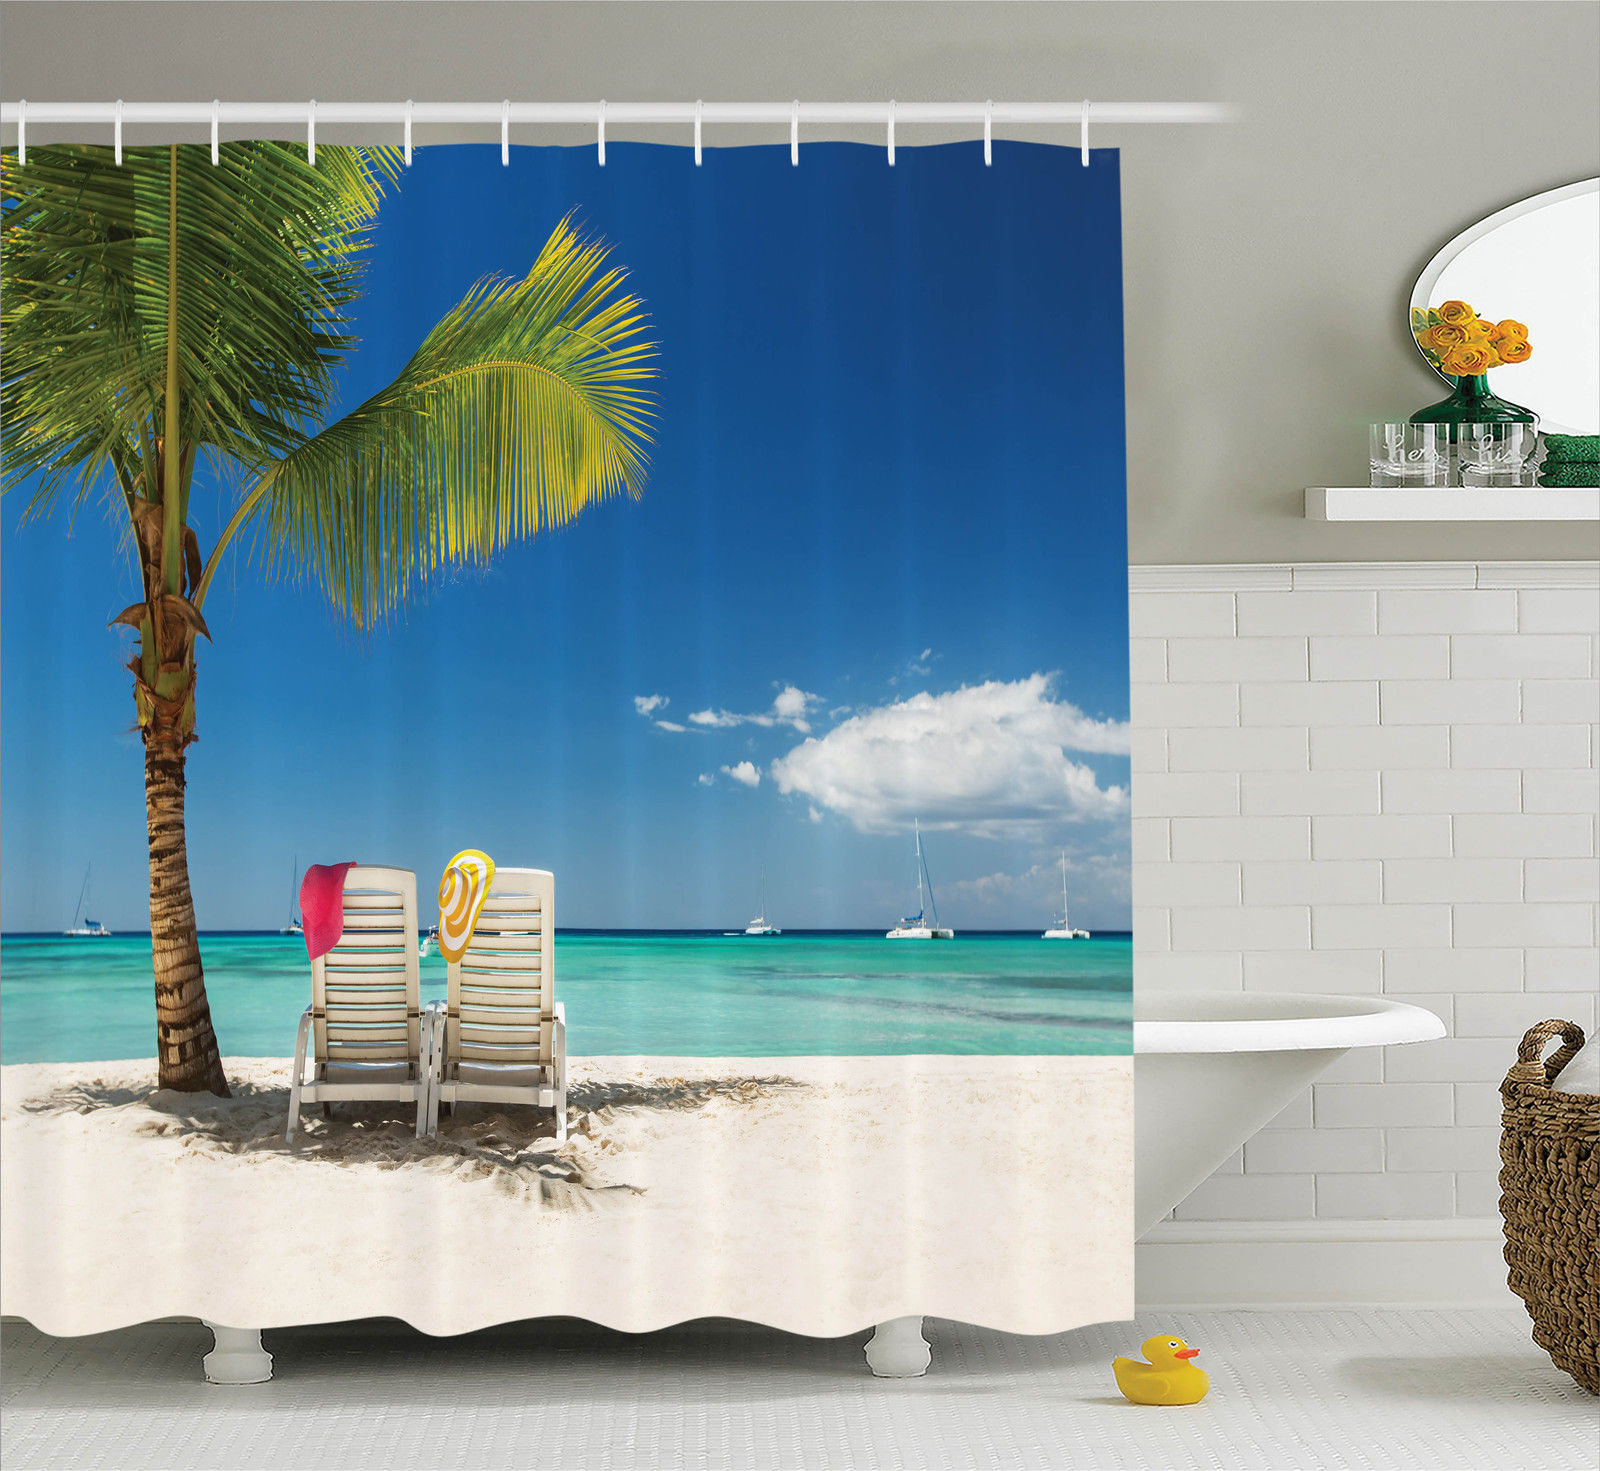 Seaside Decor Shower Curtain Set, Relaxing Scene On Remote Beach With Palm  Tree, Chairs And Boats Panoramic Picture, Bathroom Accessories, 69W X 70L  ...